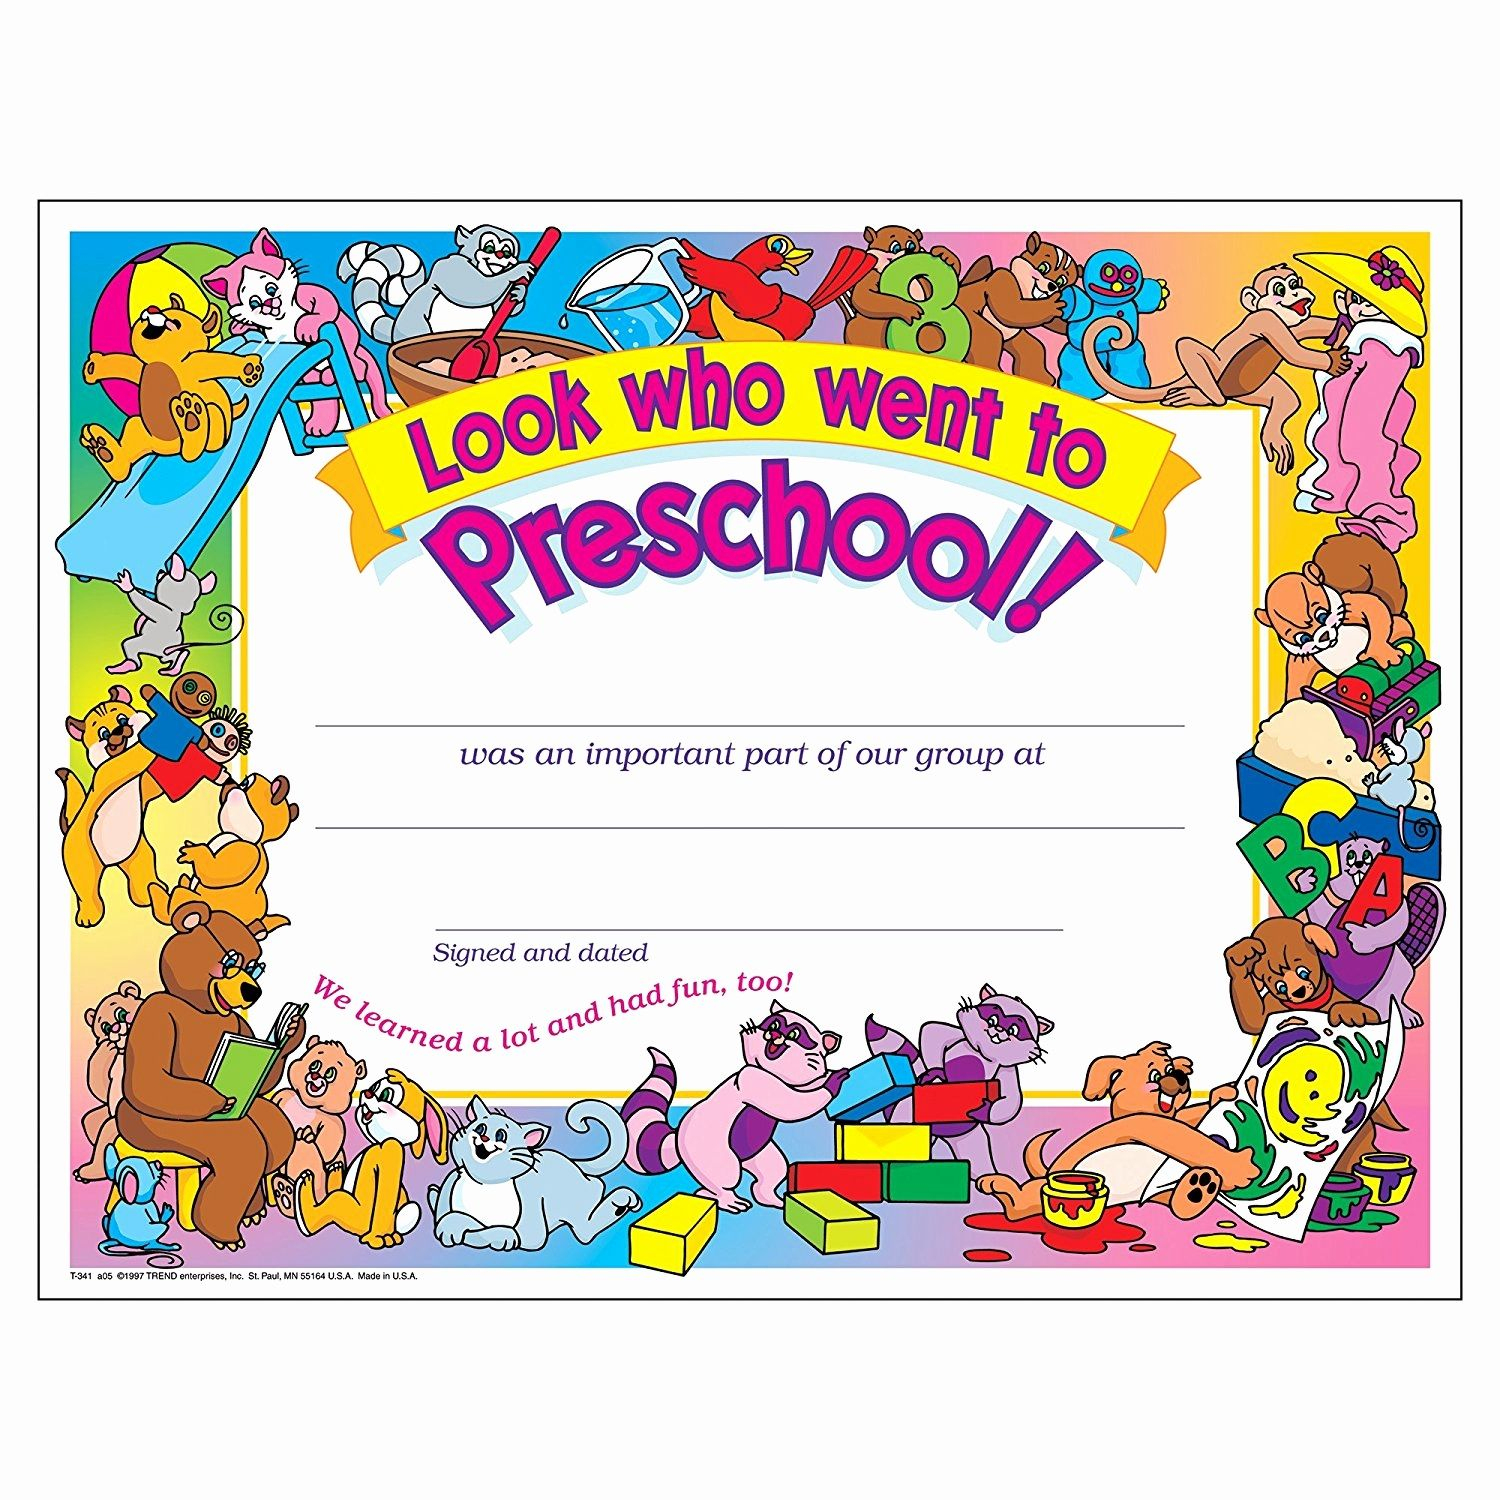 Preschool Certificate Templates Awesome Free Printable Preschool - Free Printable Children's Certificates Templates